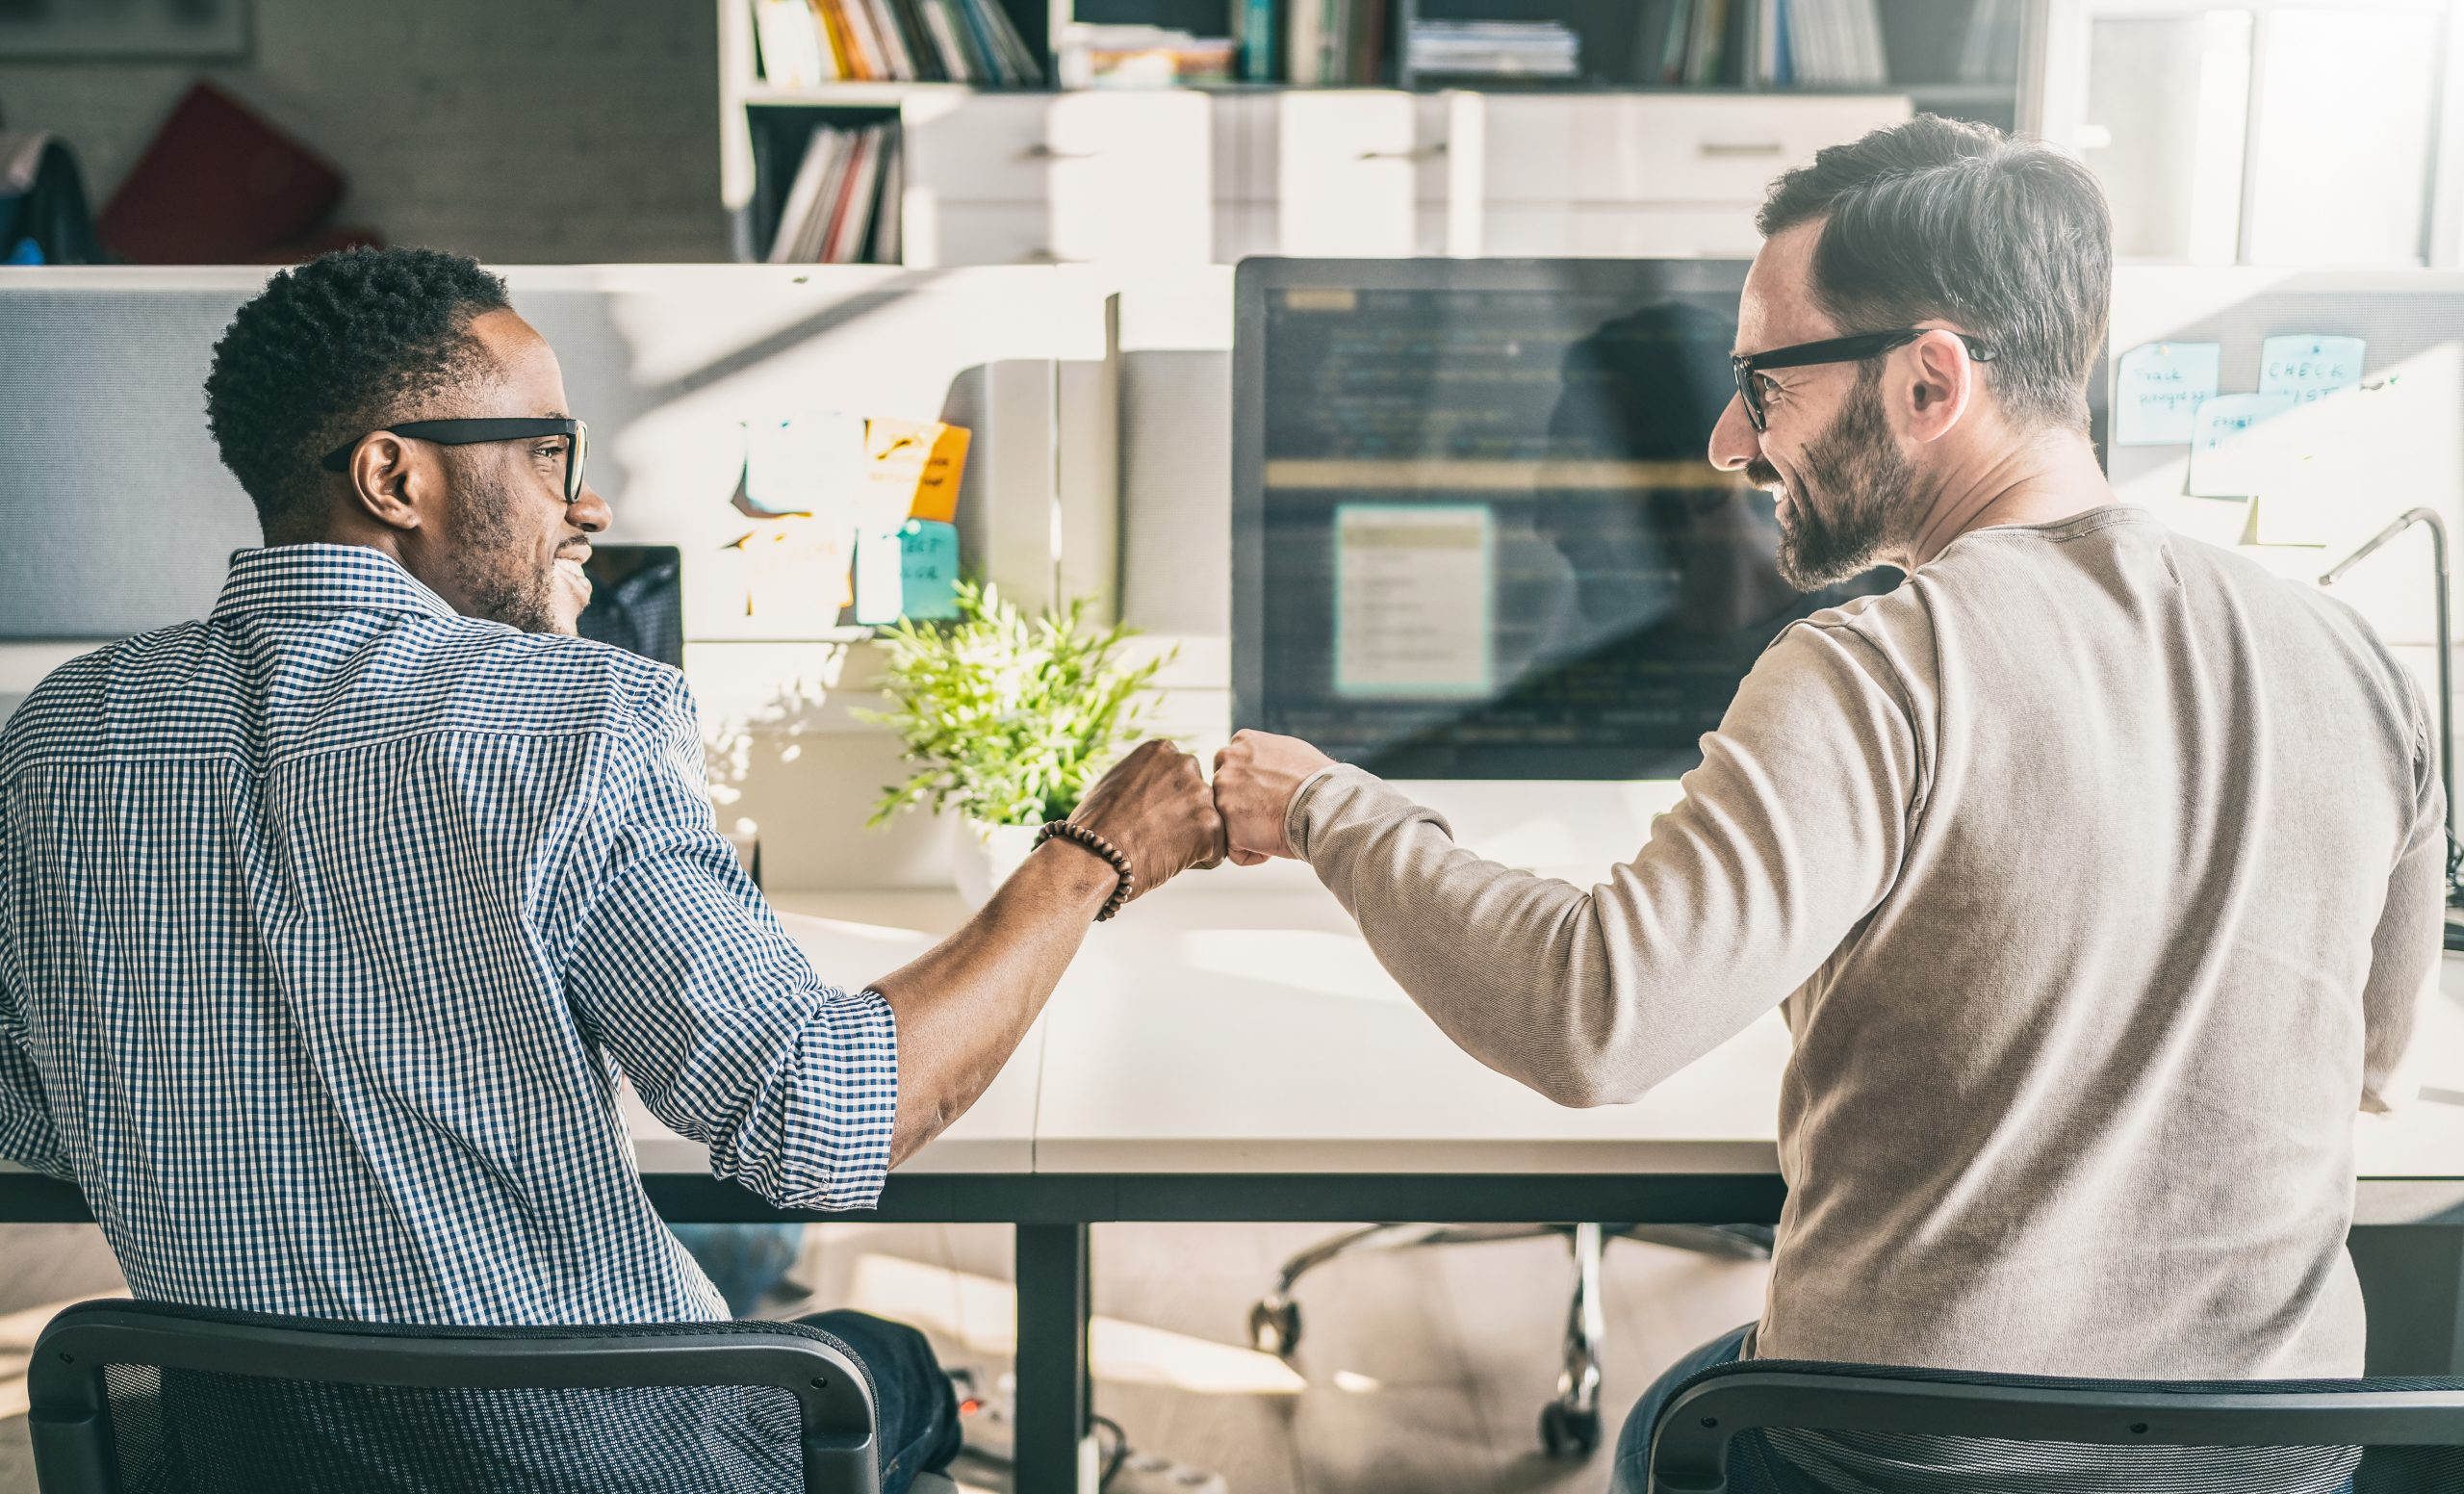 Connections at Work: They Matter